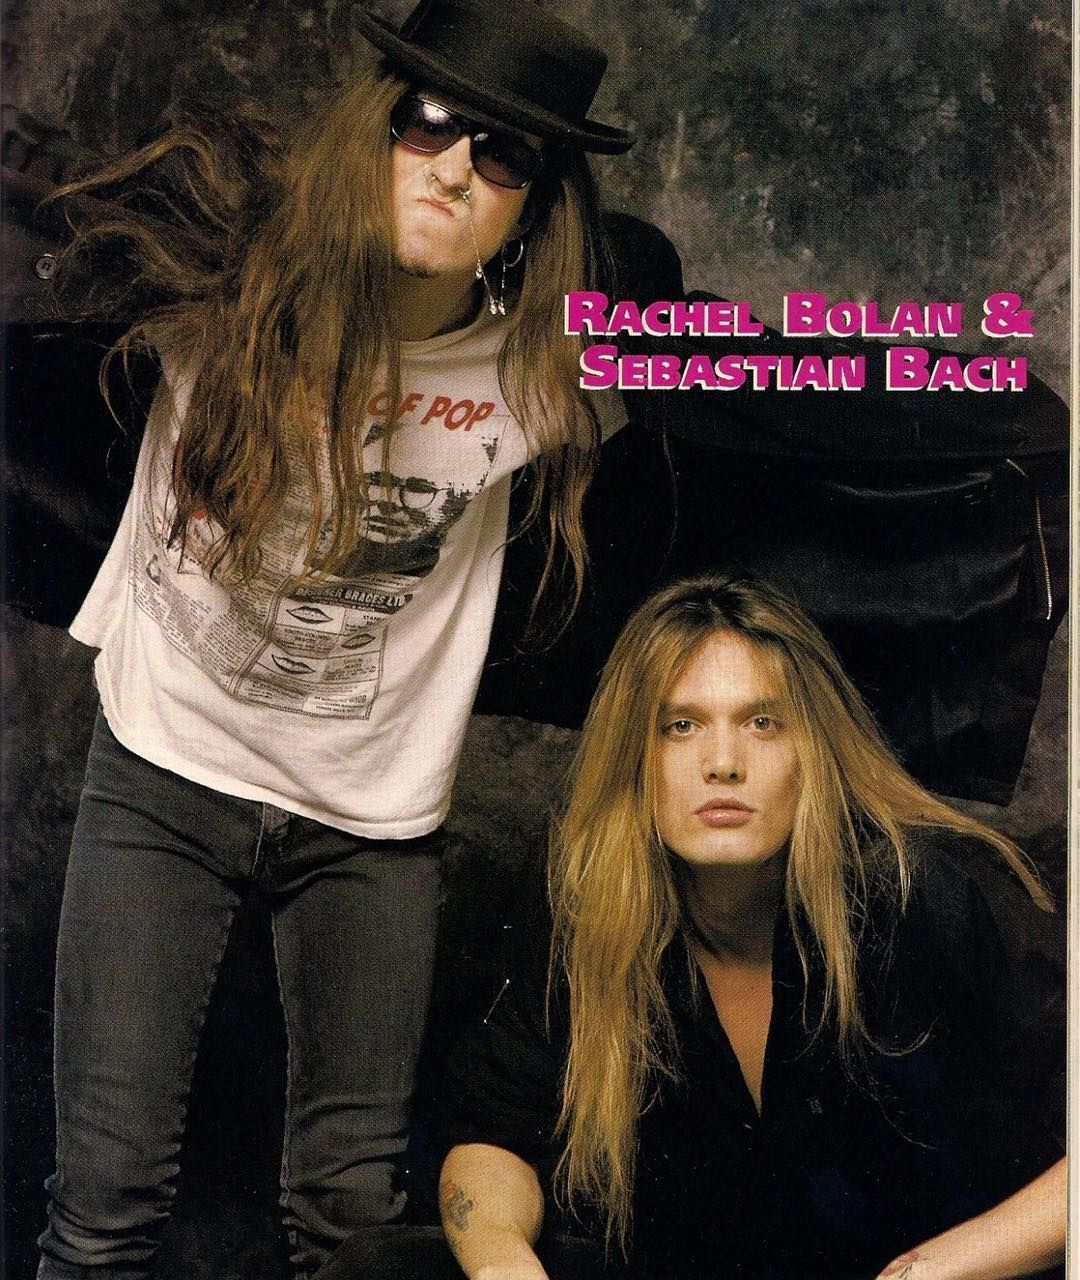 105 Curtidas 2 Comentários Glam Rock Glam Rock 80s No Instagram Rachel And Sebastian Band Skid Row Skid Row Band Sebastian Bach